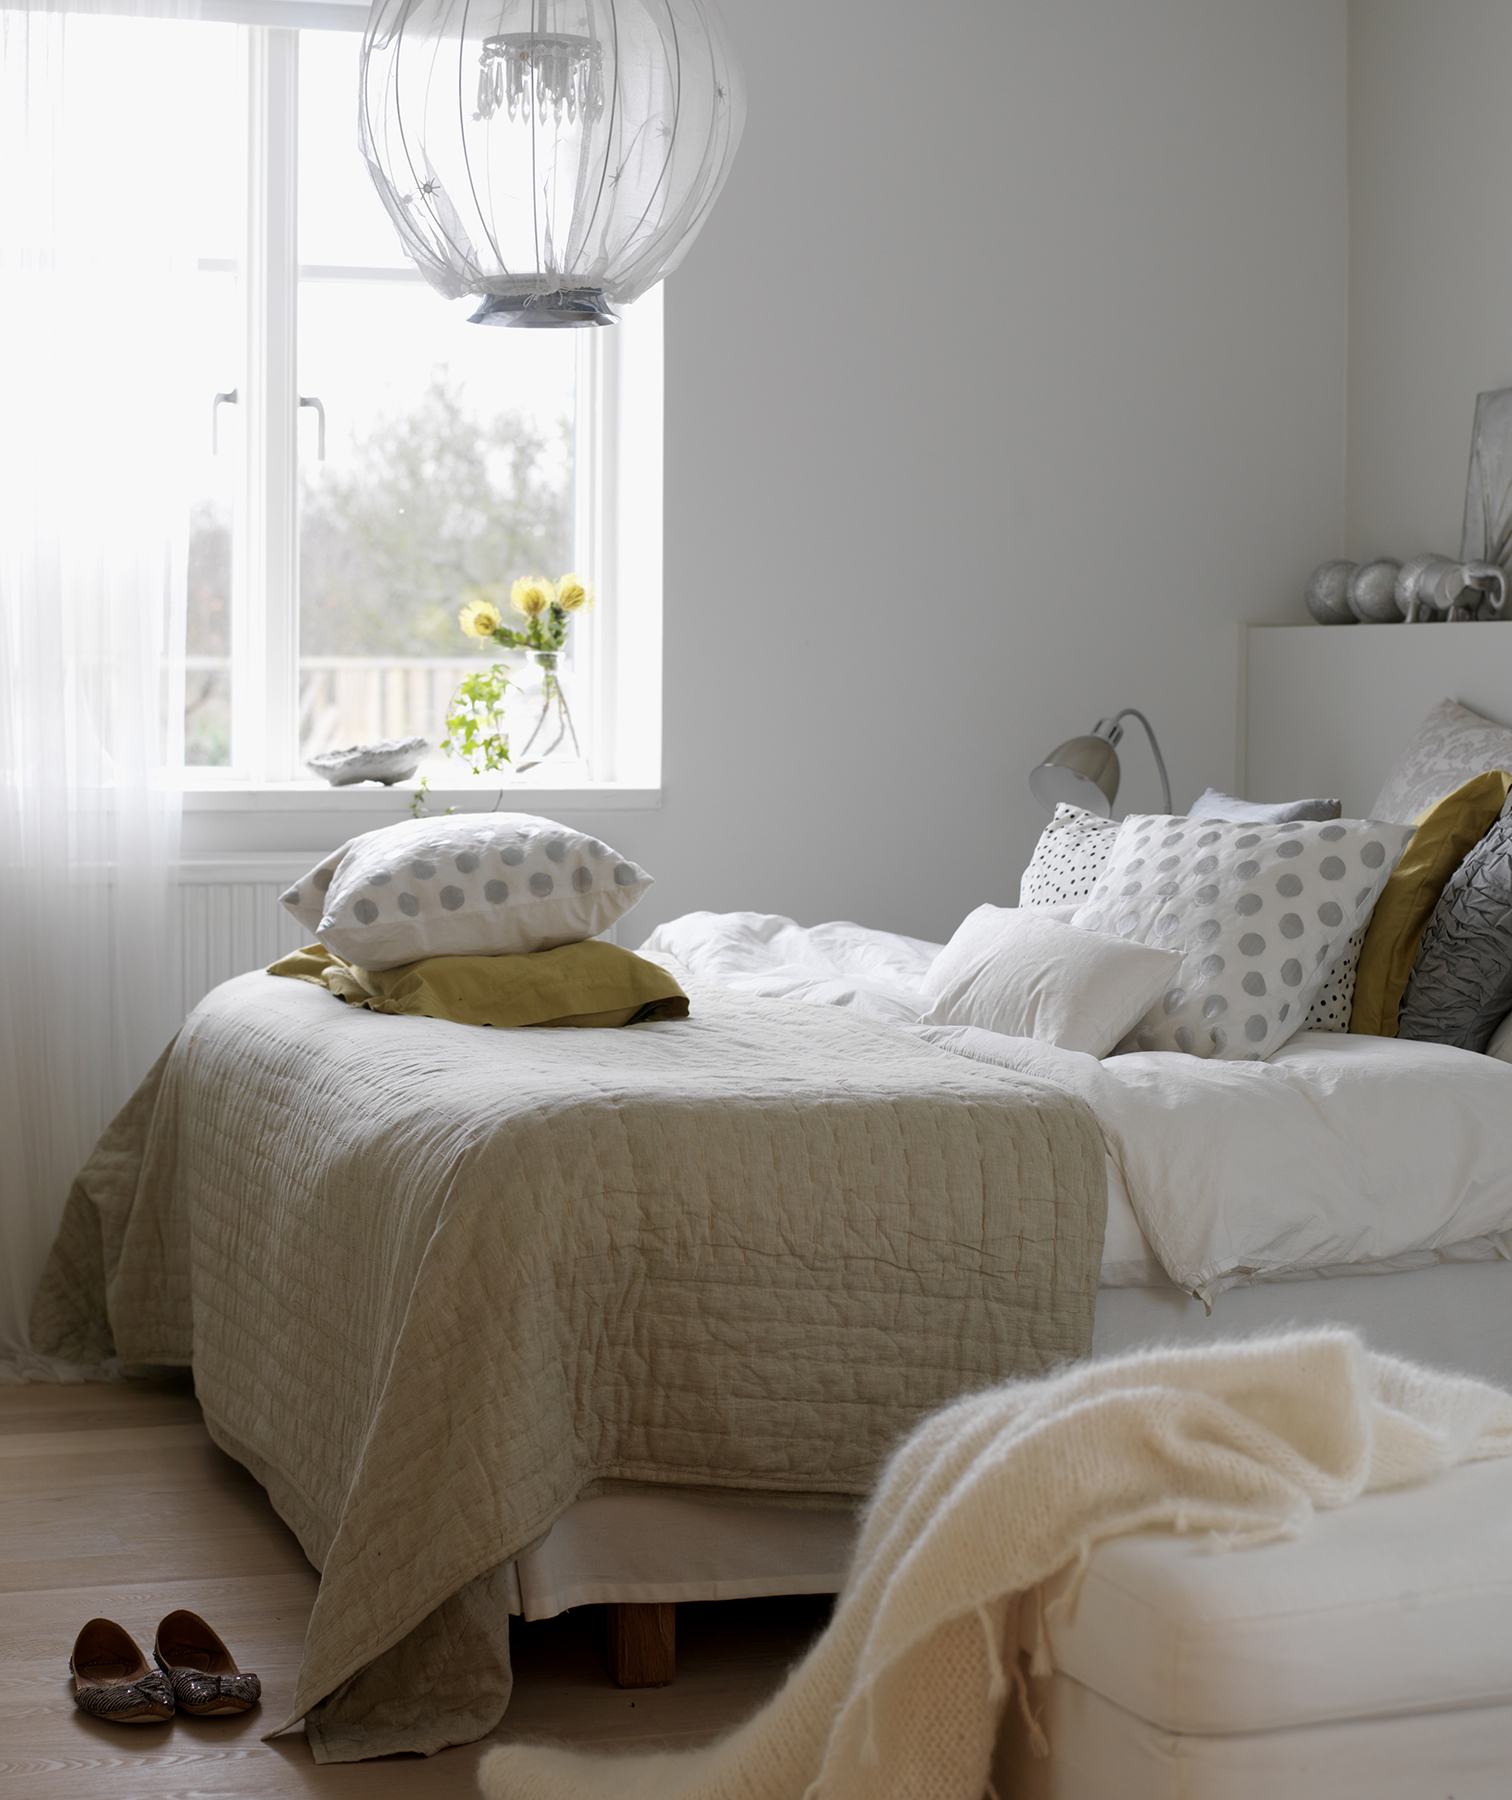 Light airy bedroom with pillows and throws